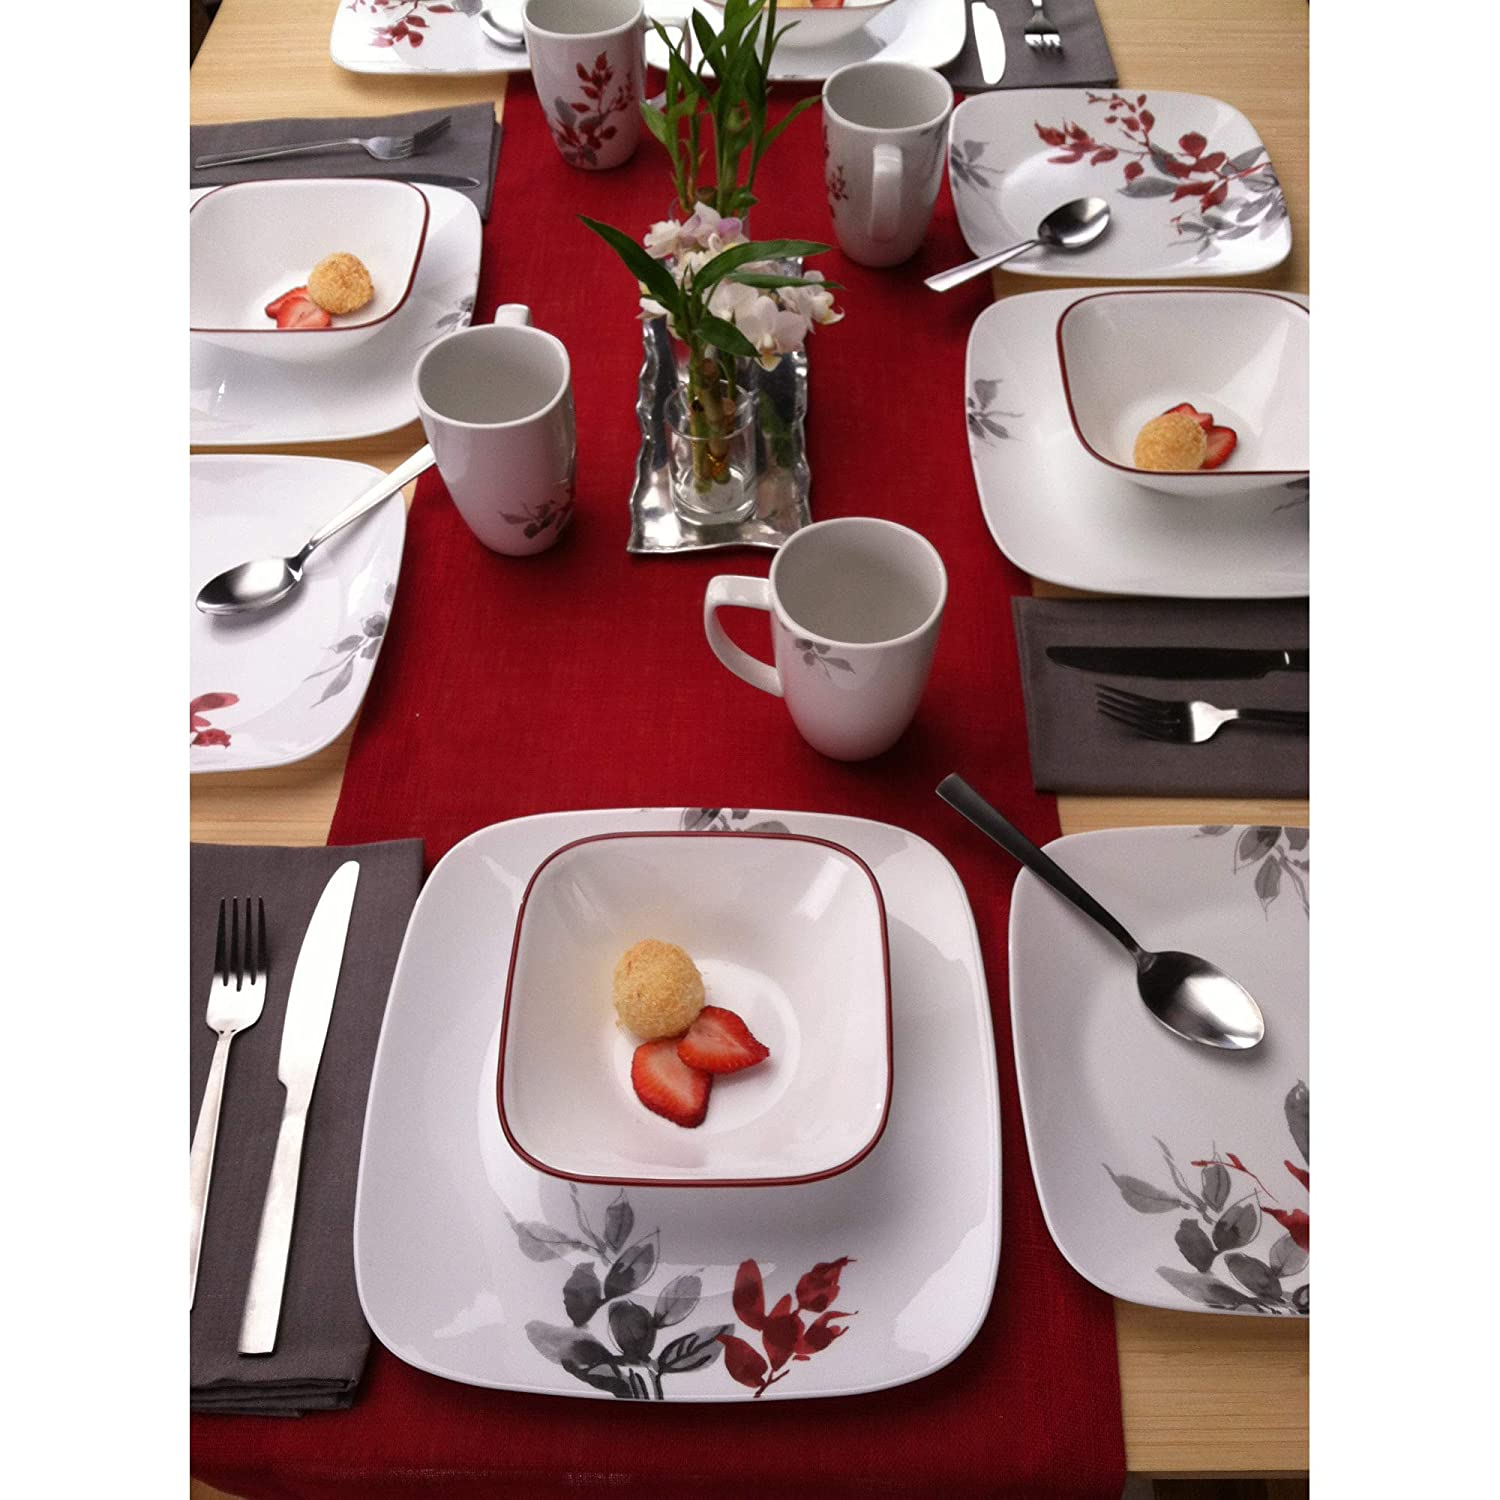 Corelle Boutique Square Kyoto Leaves 16-Piece Dinnerware Set Service for 4